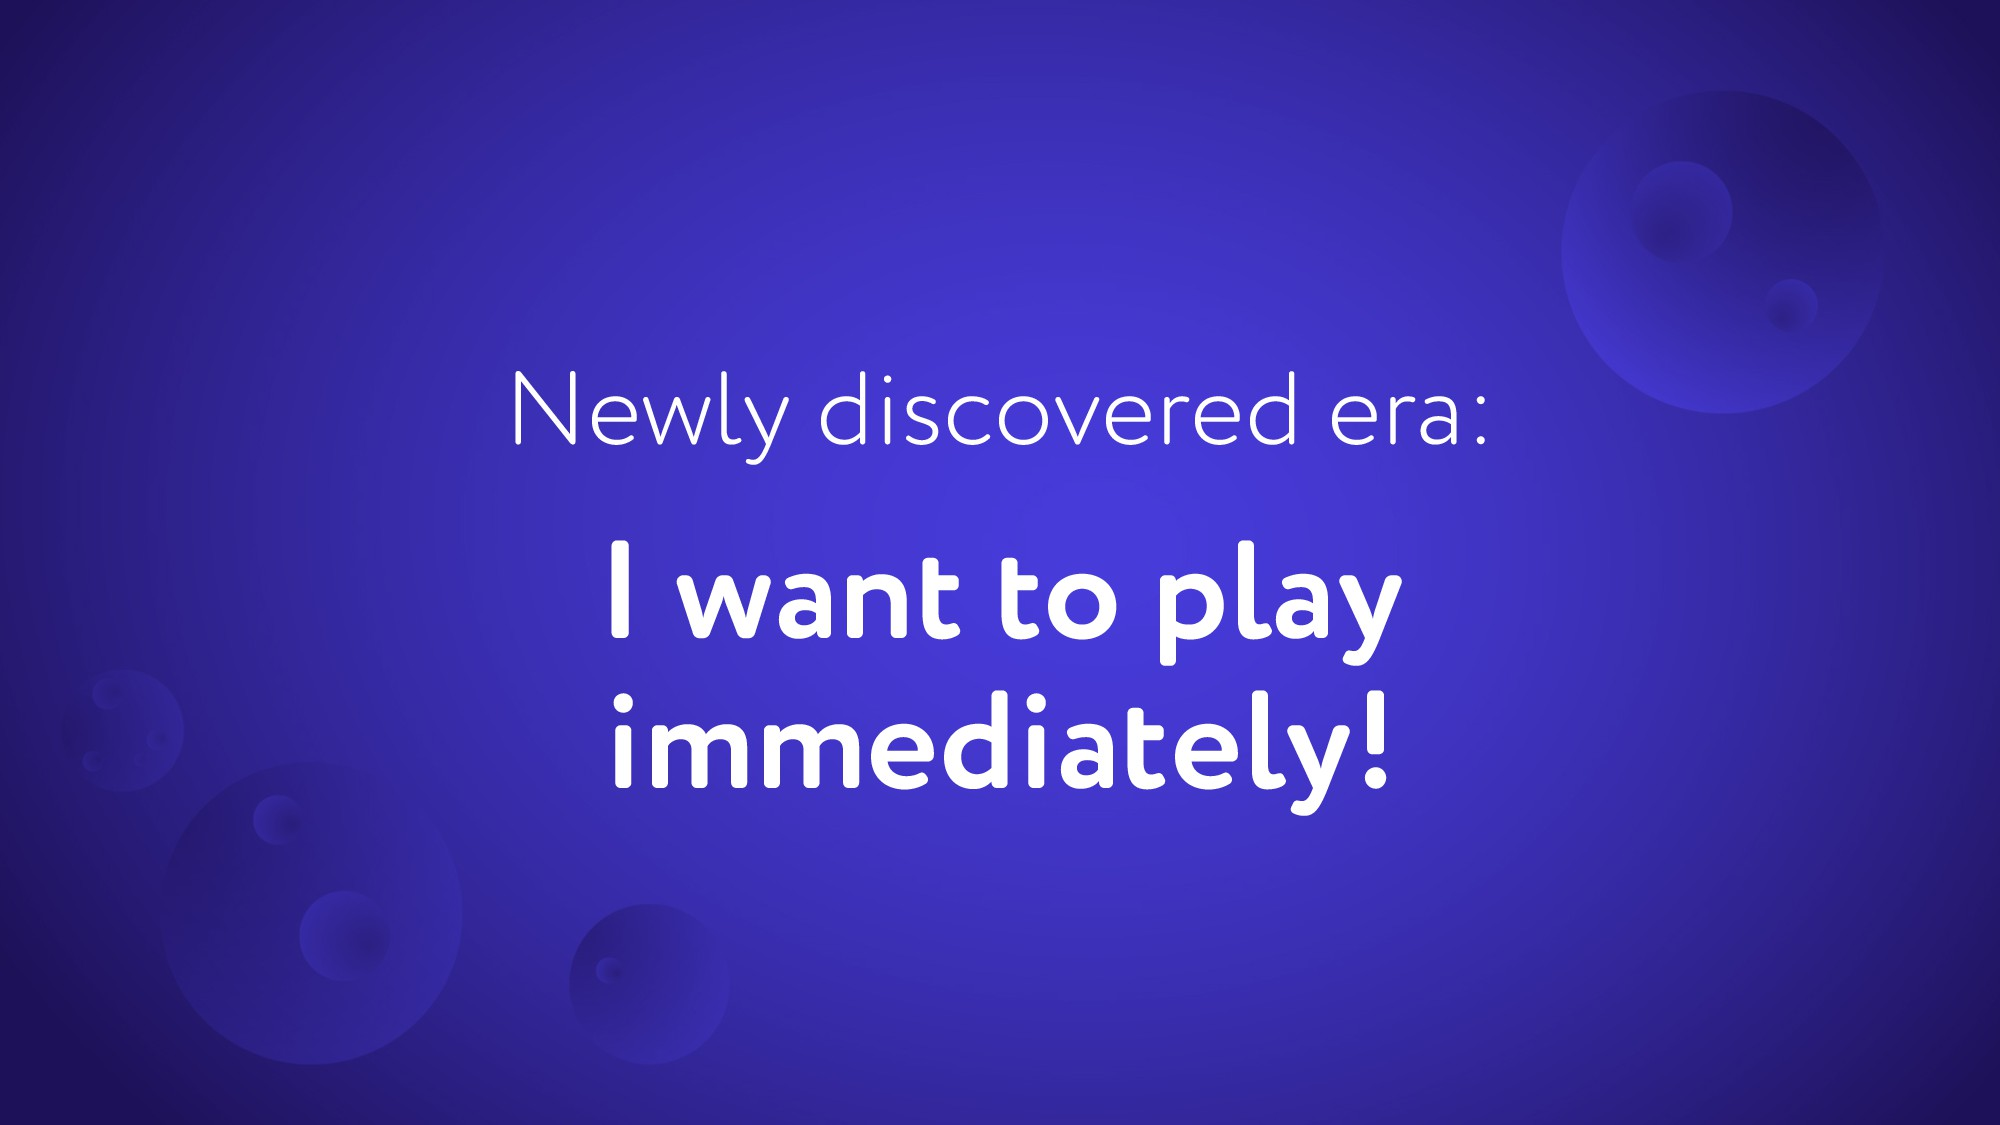 I want to play immediately! Newly discovered er...